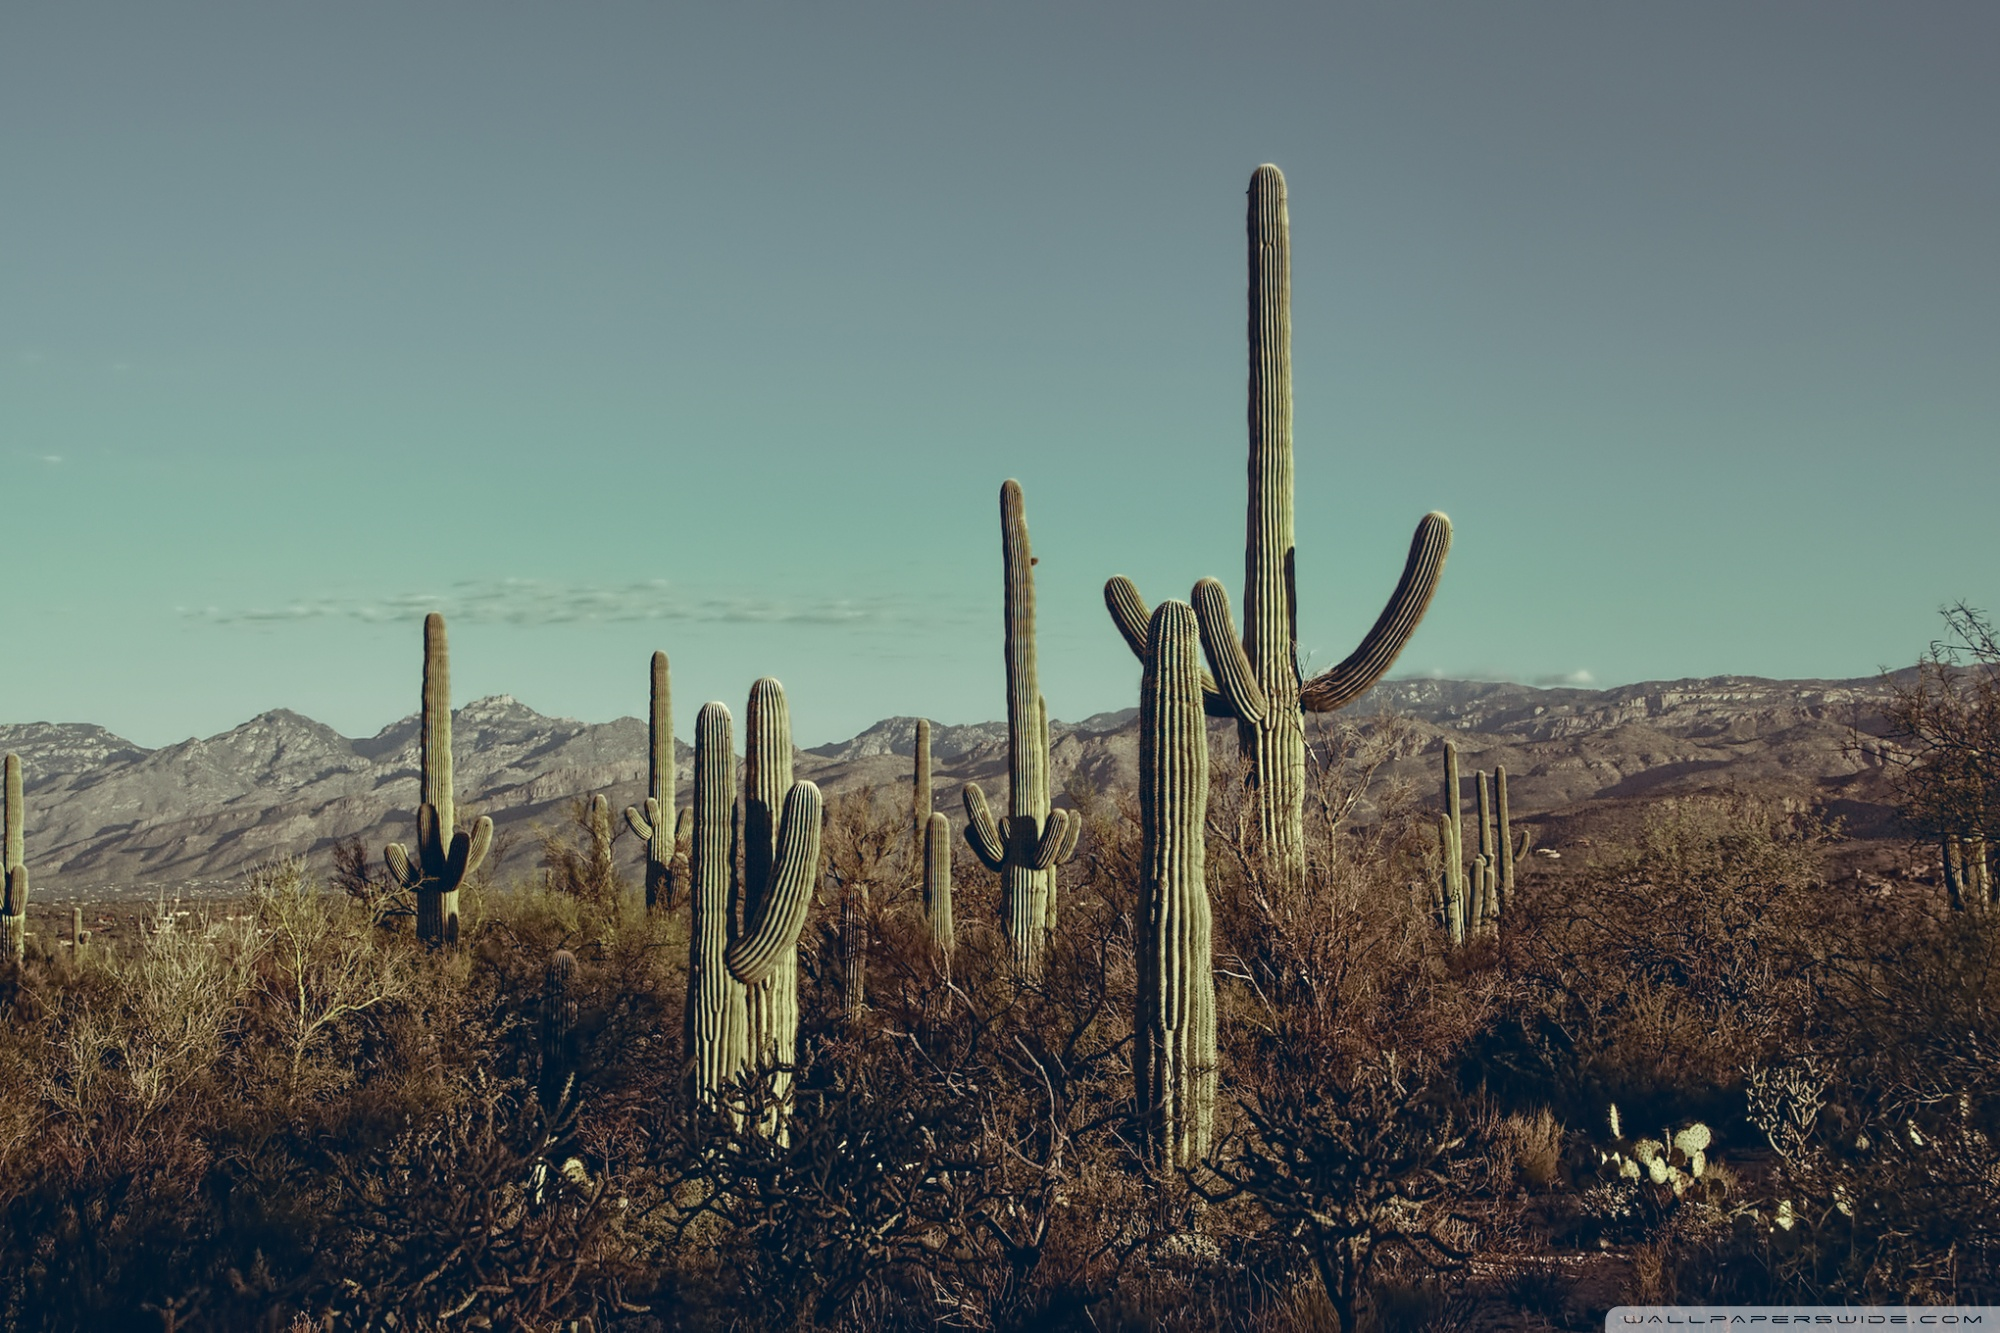 Saguaro National Park East Arizona 4K HD Desktop Wallpaper for 2000x1333